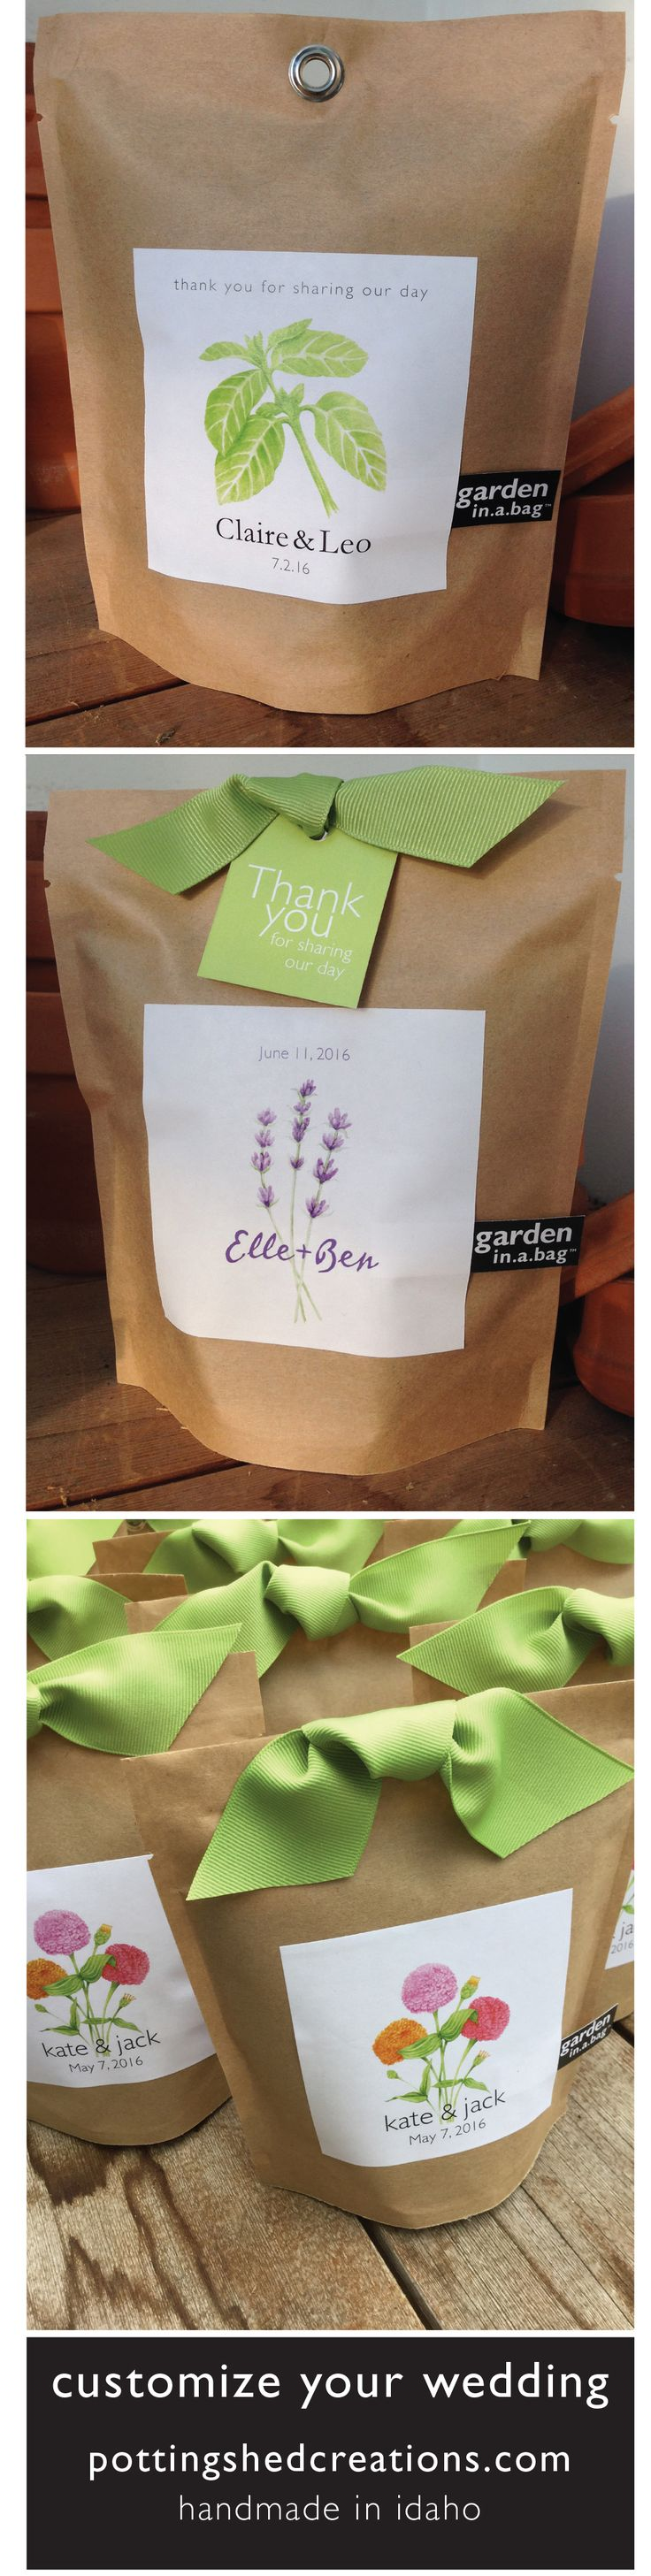 Garden in a Bag is a unique and customizable option for your wedding.  Send your guests home with herbs and flowers that will remind them of your special day as they grow.